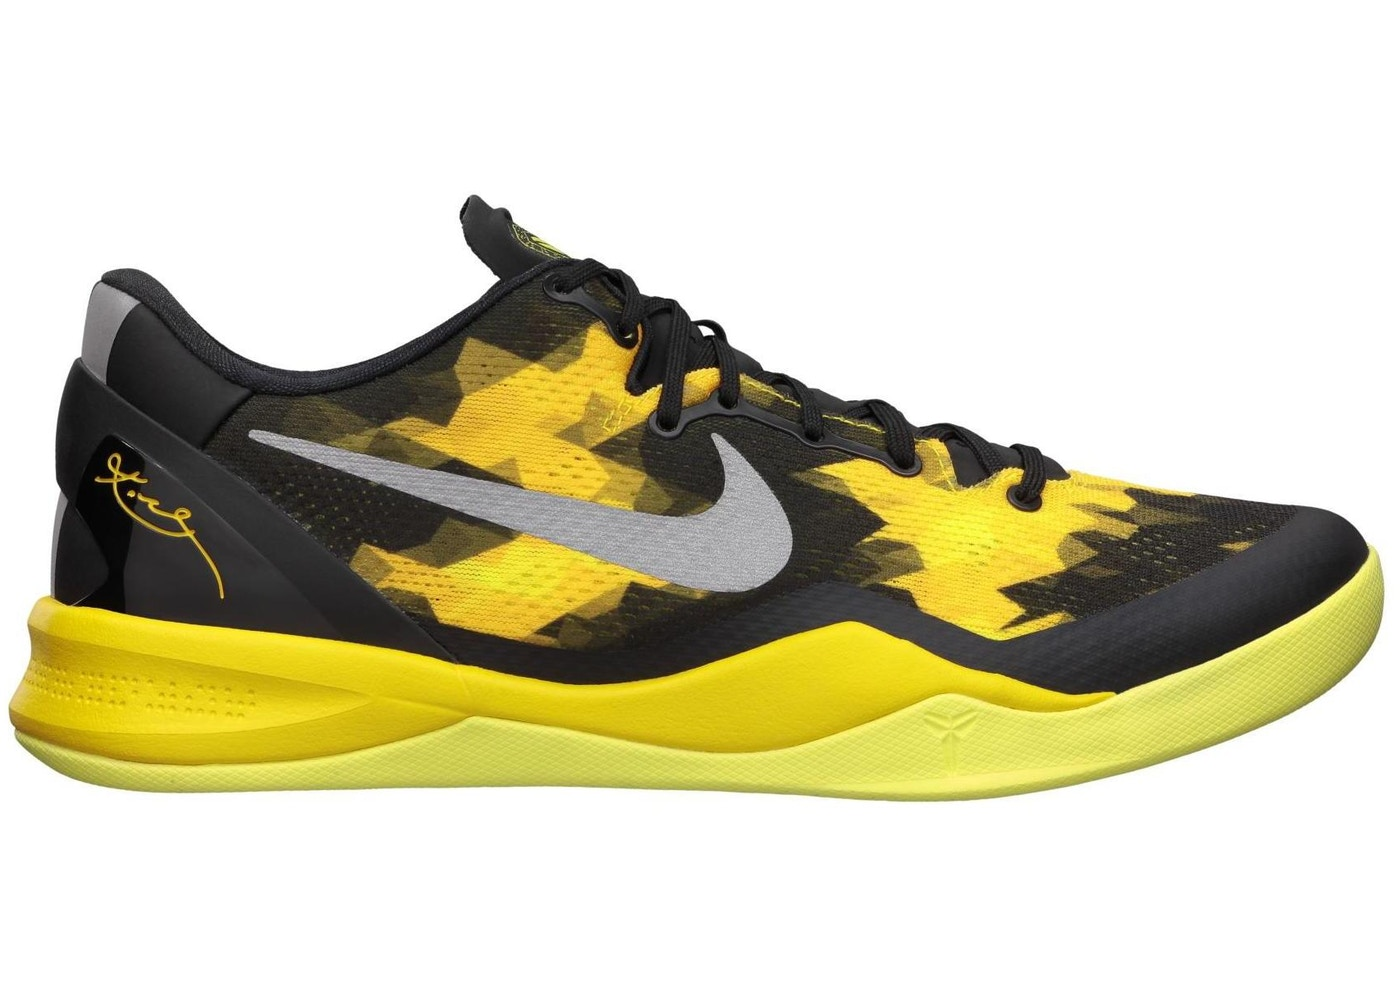 8d8dfd61ac3b Kobe 8 Sulfur   Electric - 555035-001